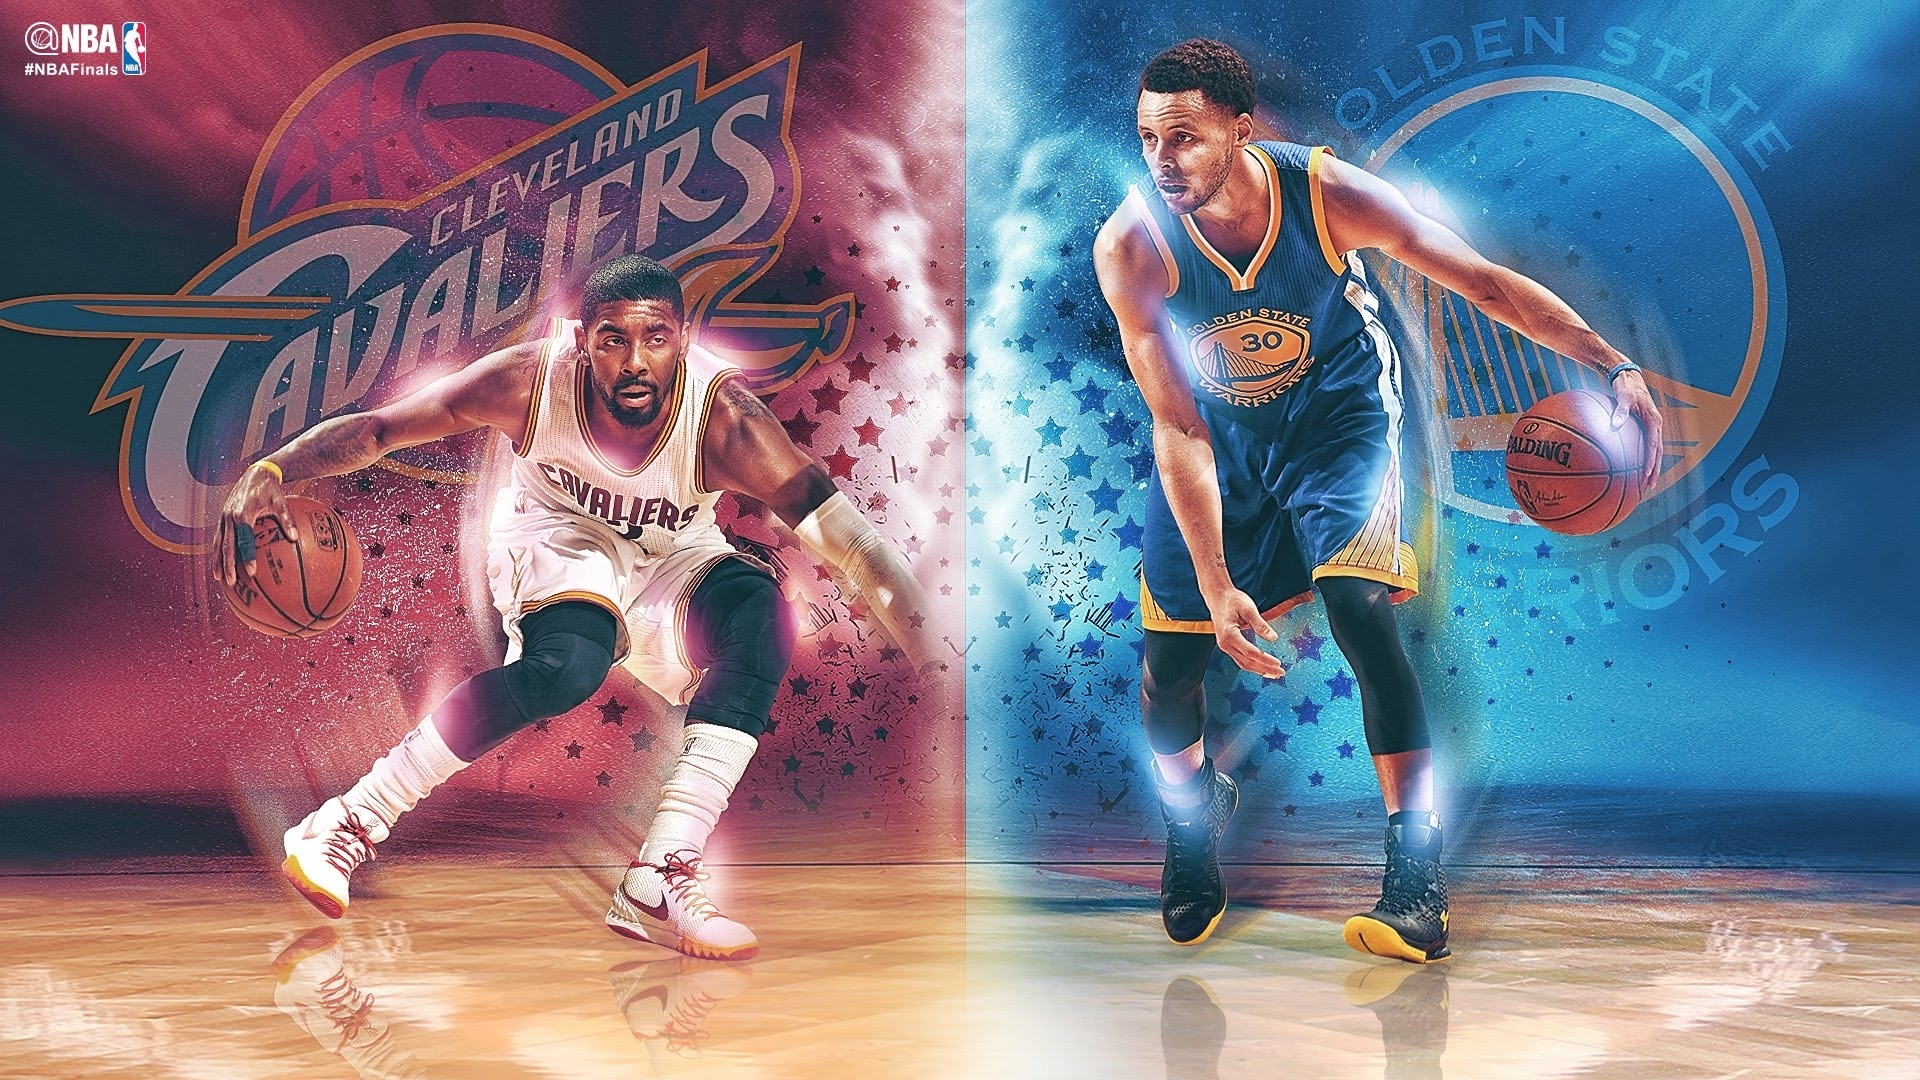 stephen curry vs kyrie irving: who's got the best handle? - youtube